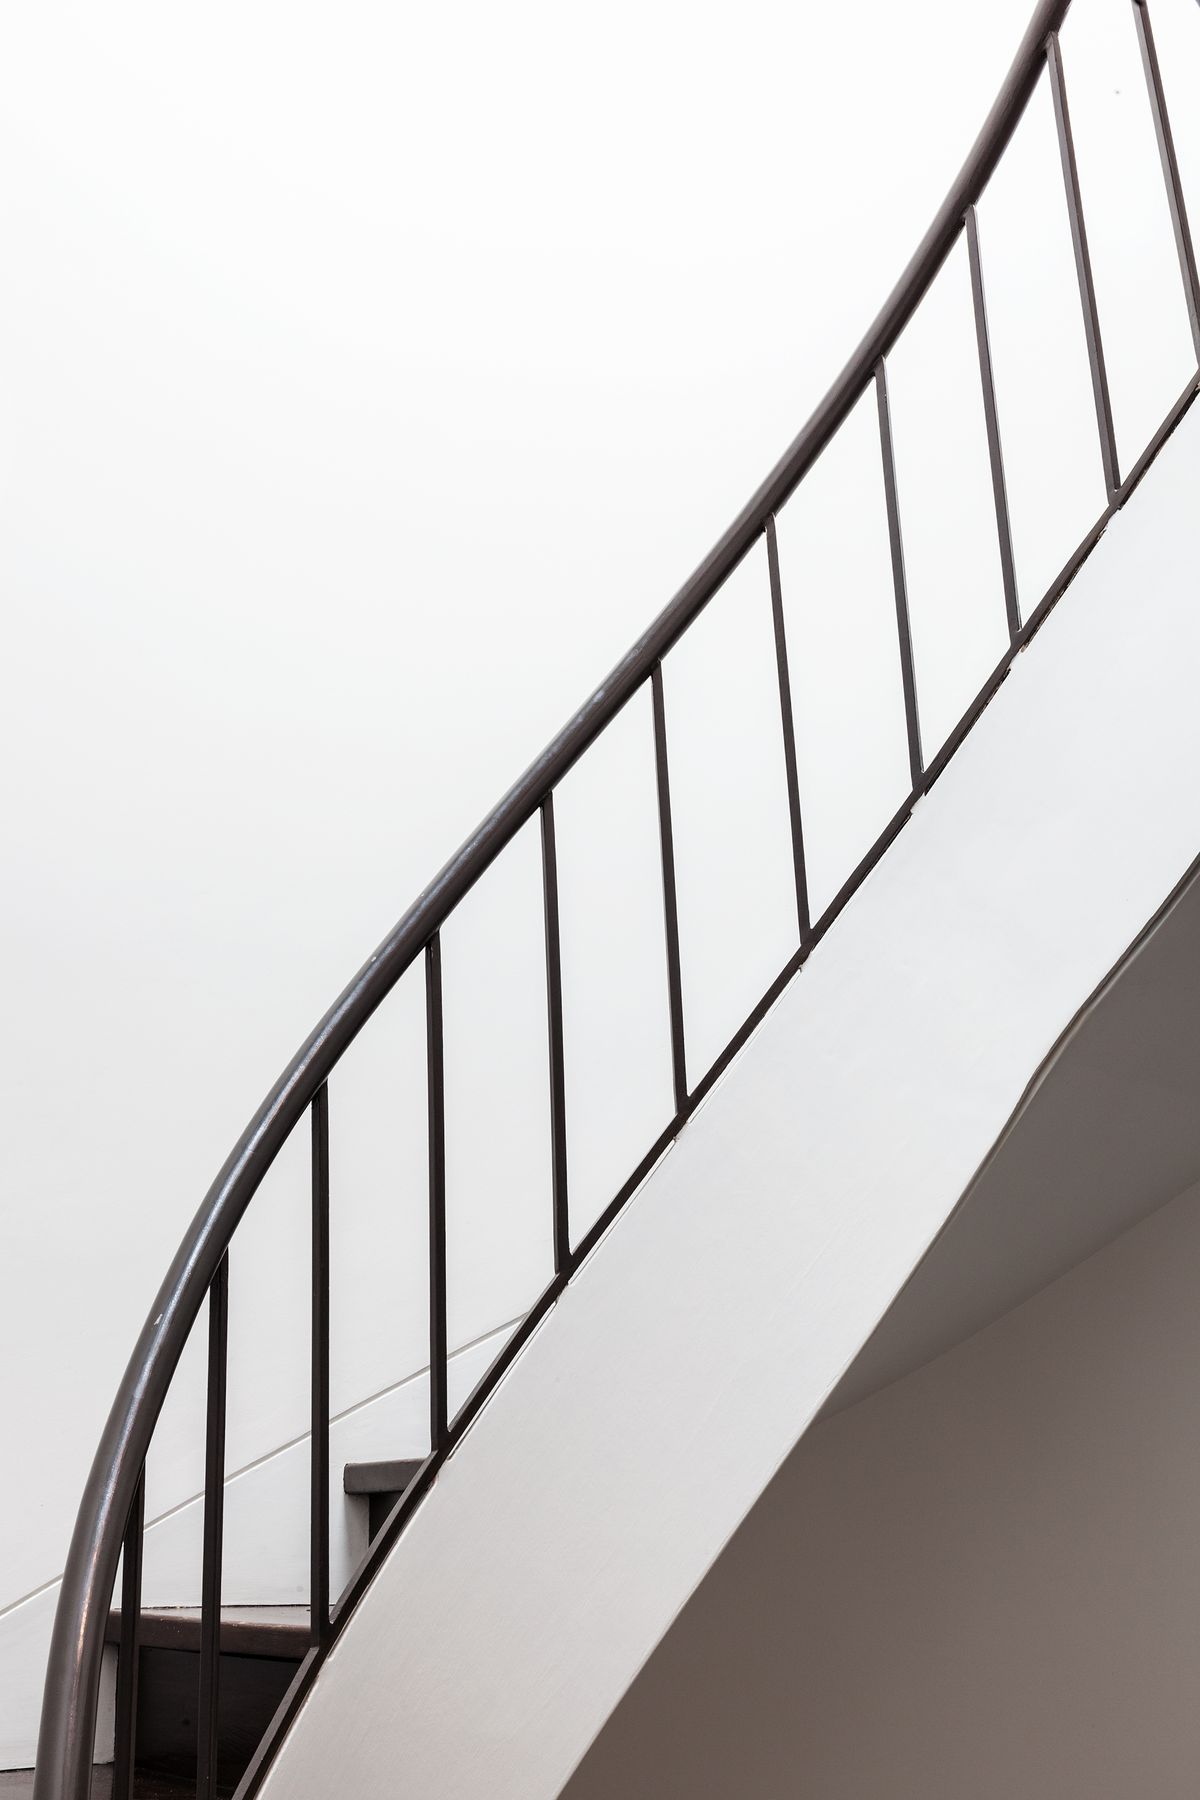 A curving staircase with a metal handrail and spindles stretches up to a skylight.